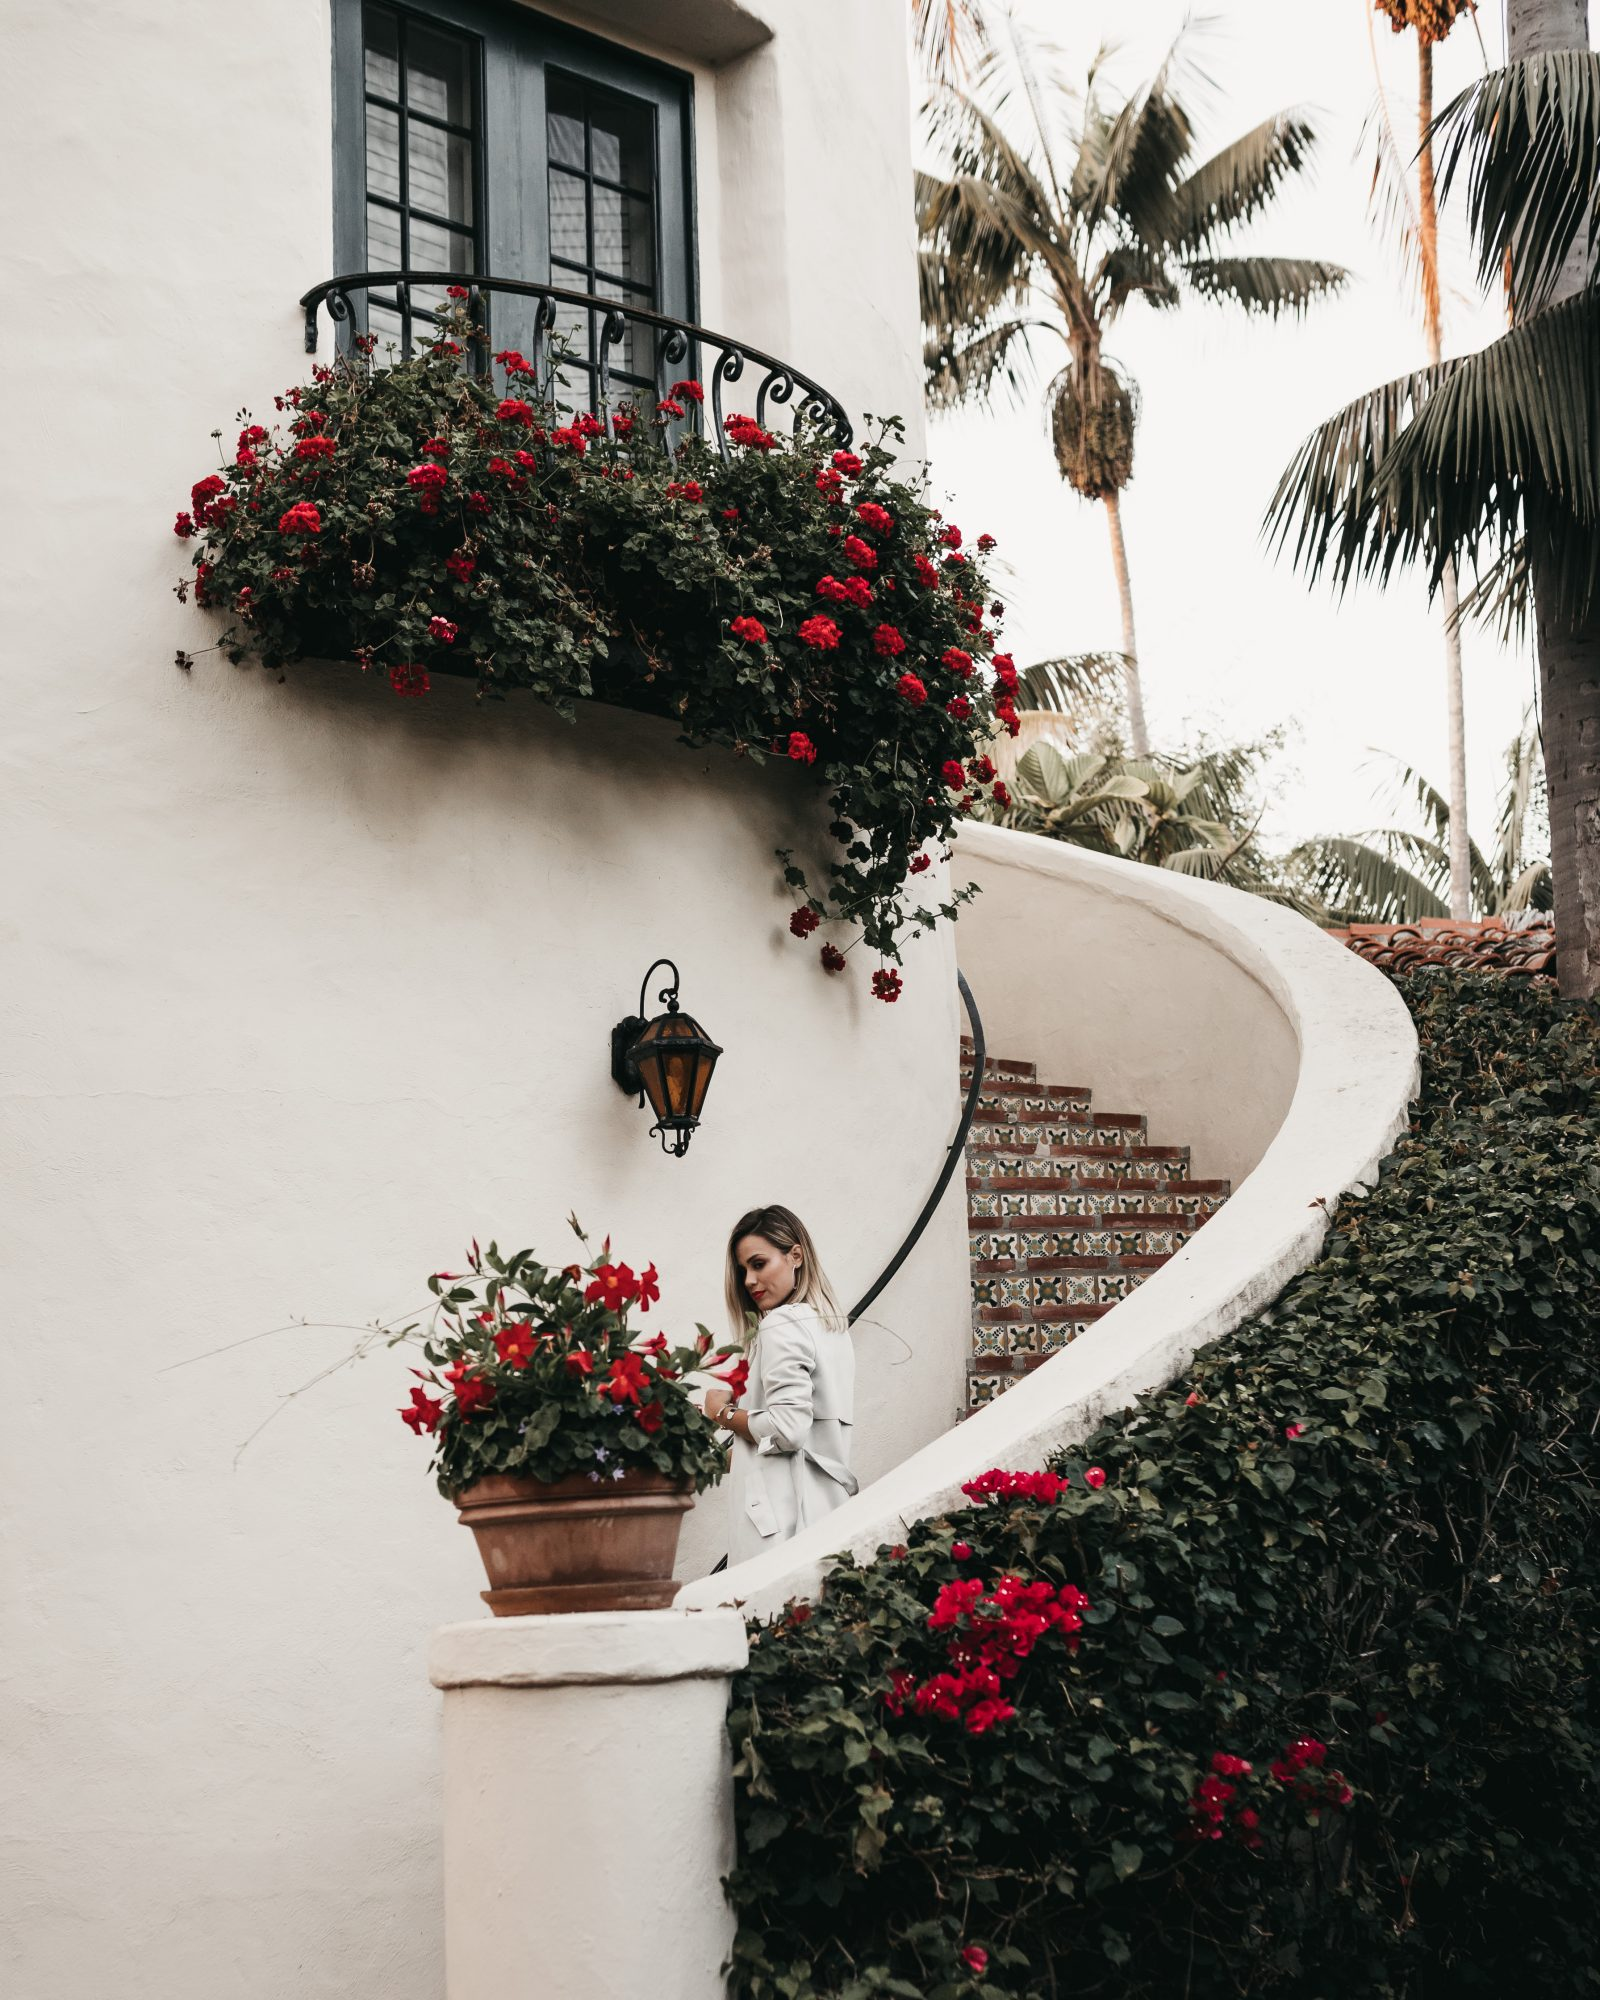 Houston blogger Uptown with Elly Brown visits the Four Seasons property in Santa Barbara, CA